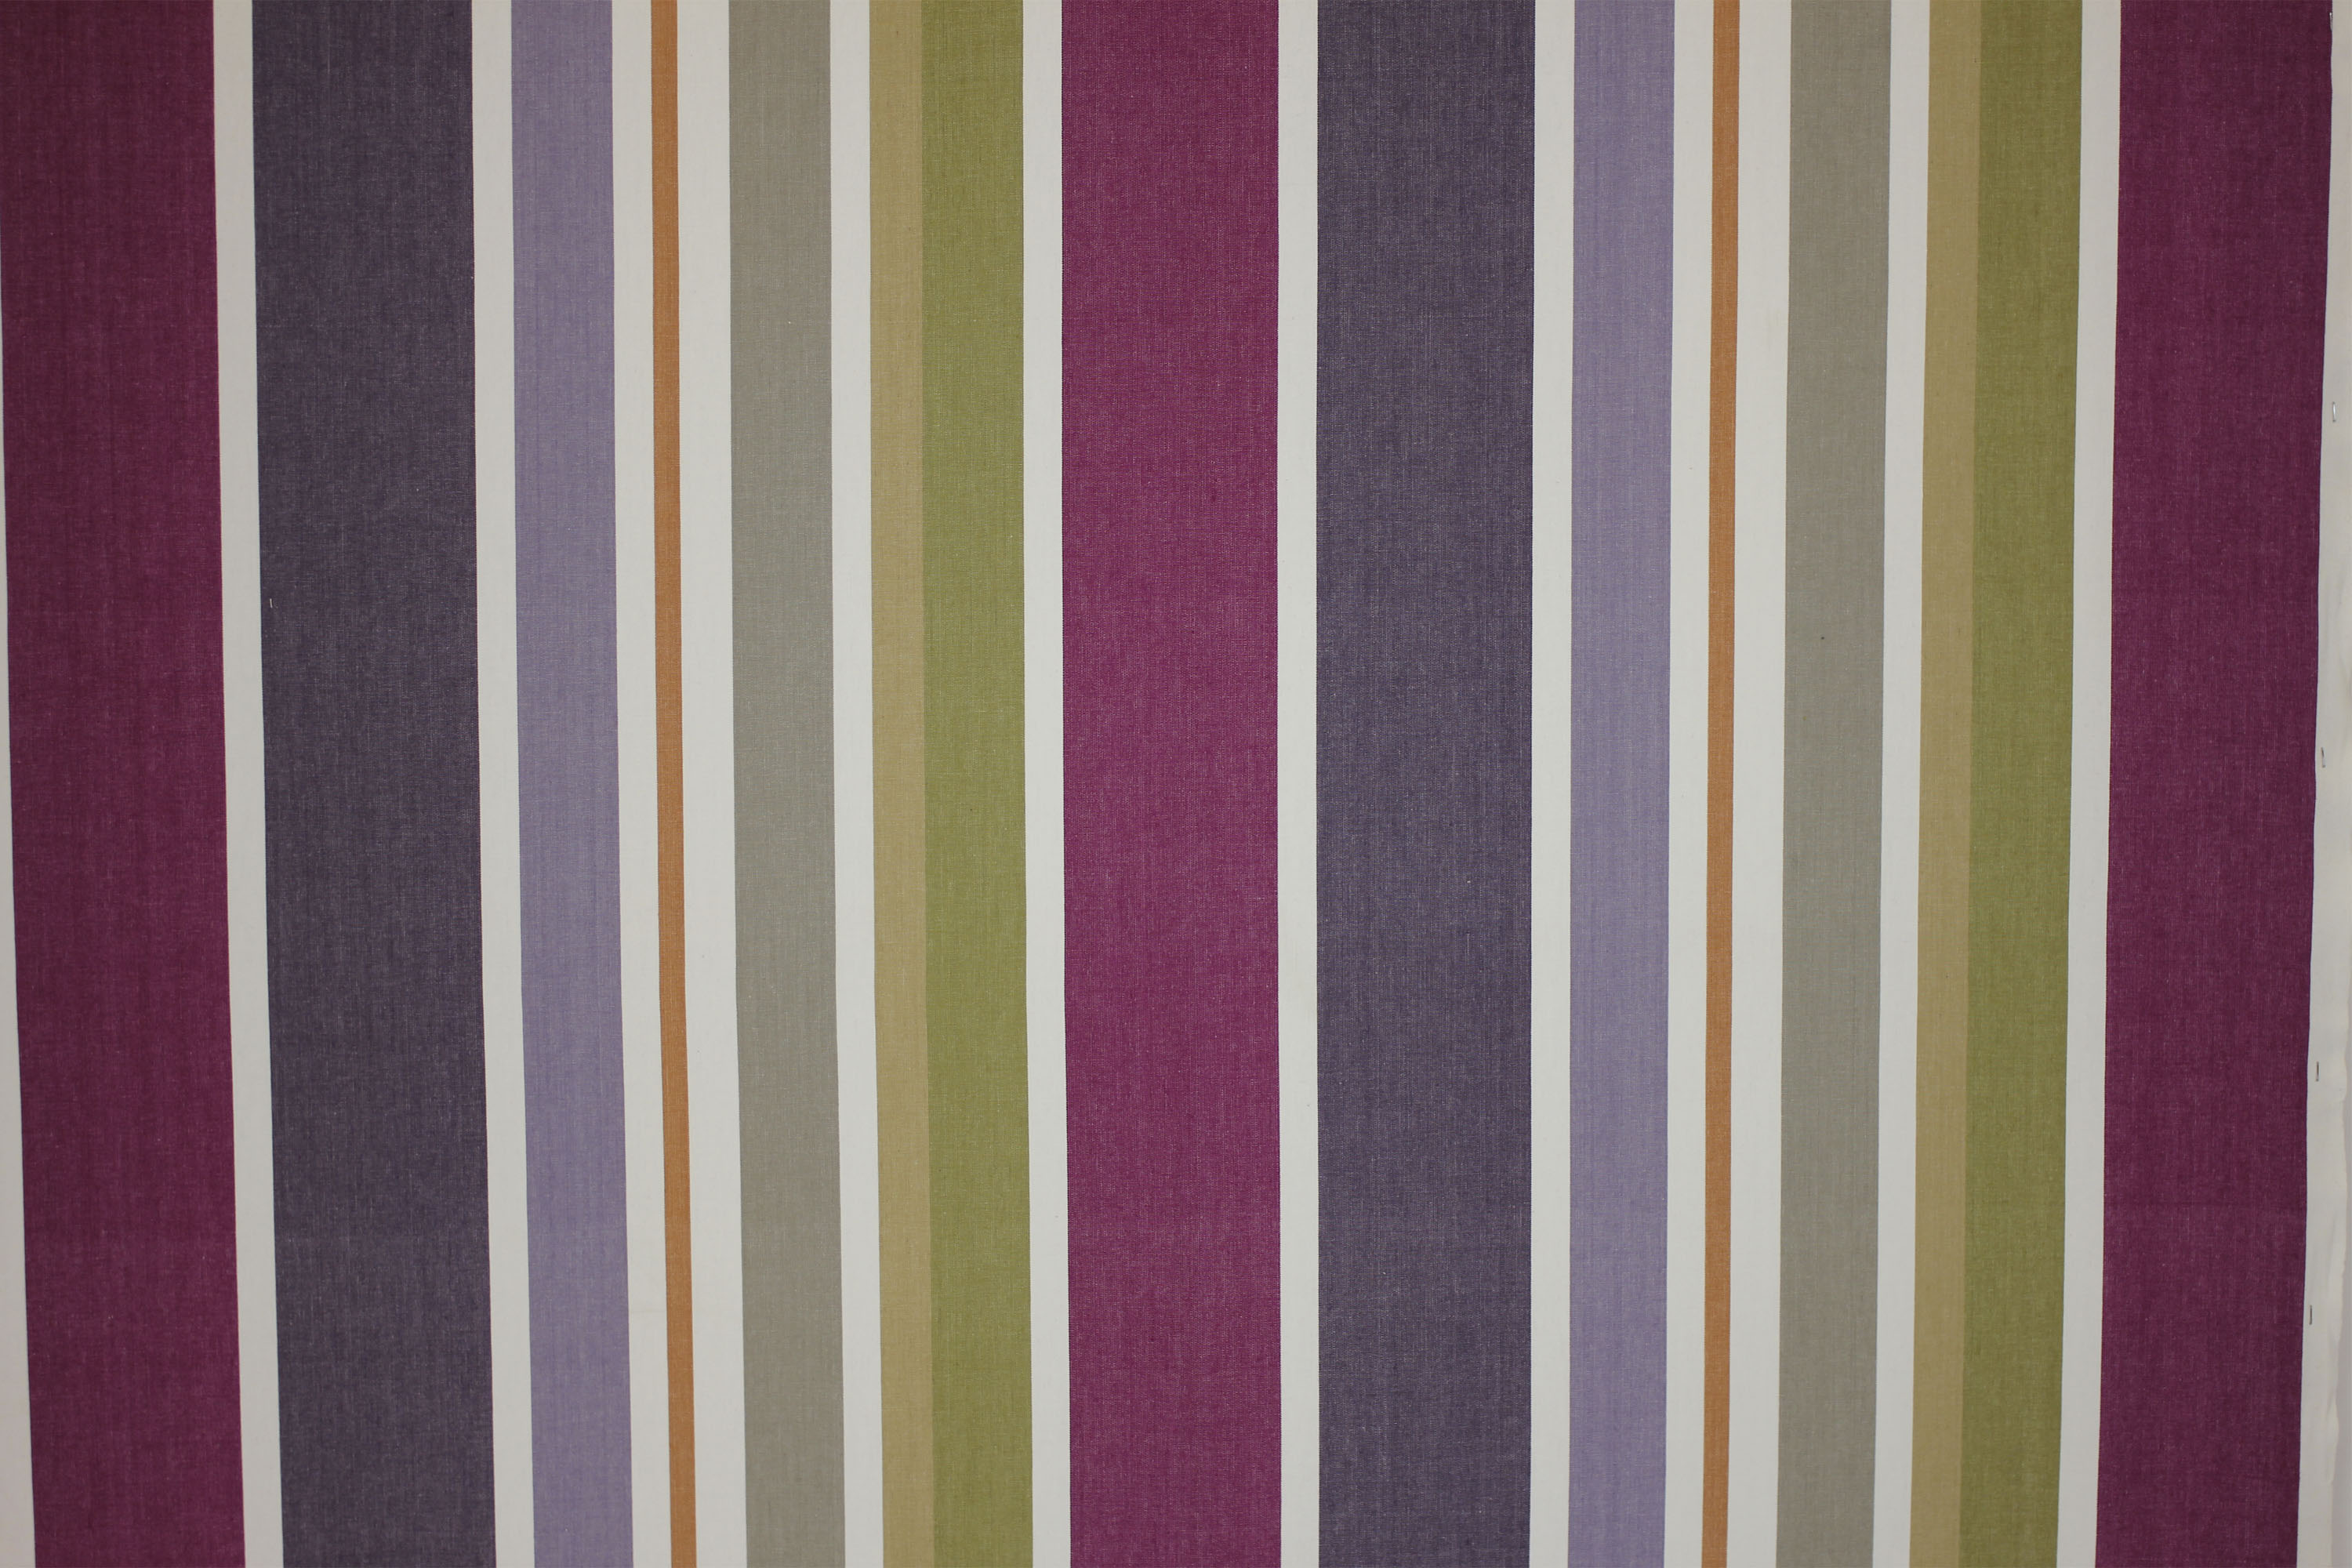 Purple Striped Fabrics | Stripe Cotton Fabrics | Striped Curtain Fabrics | Upholstery Fabrics  Marbles Stripes